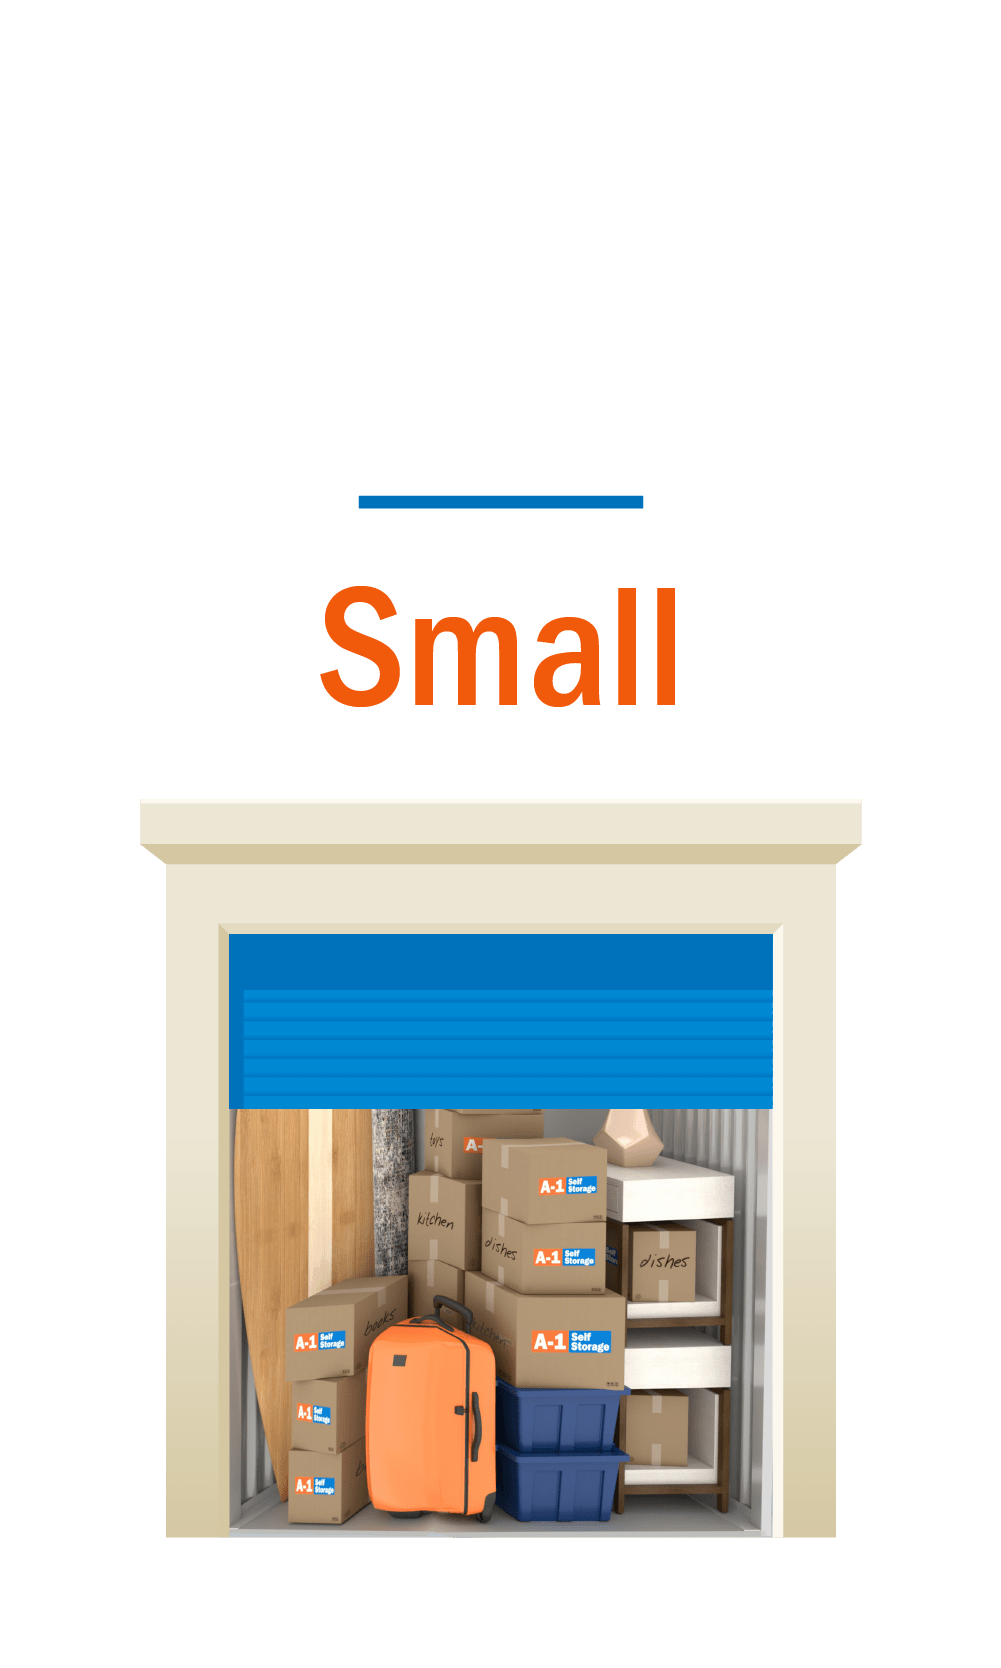 Small storage unit graphic with open door